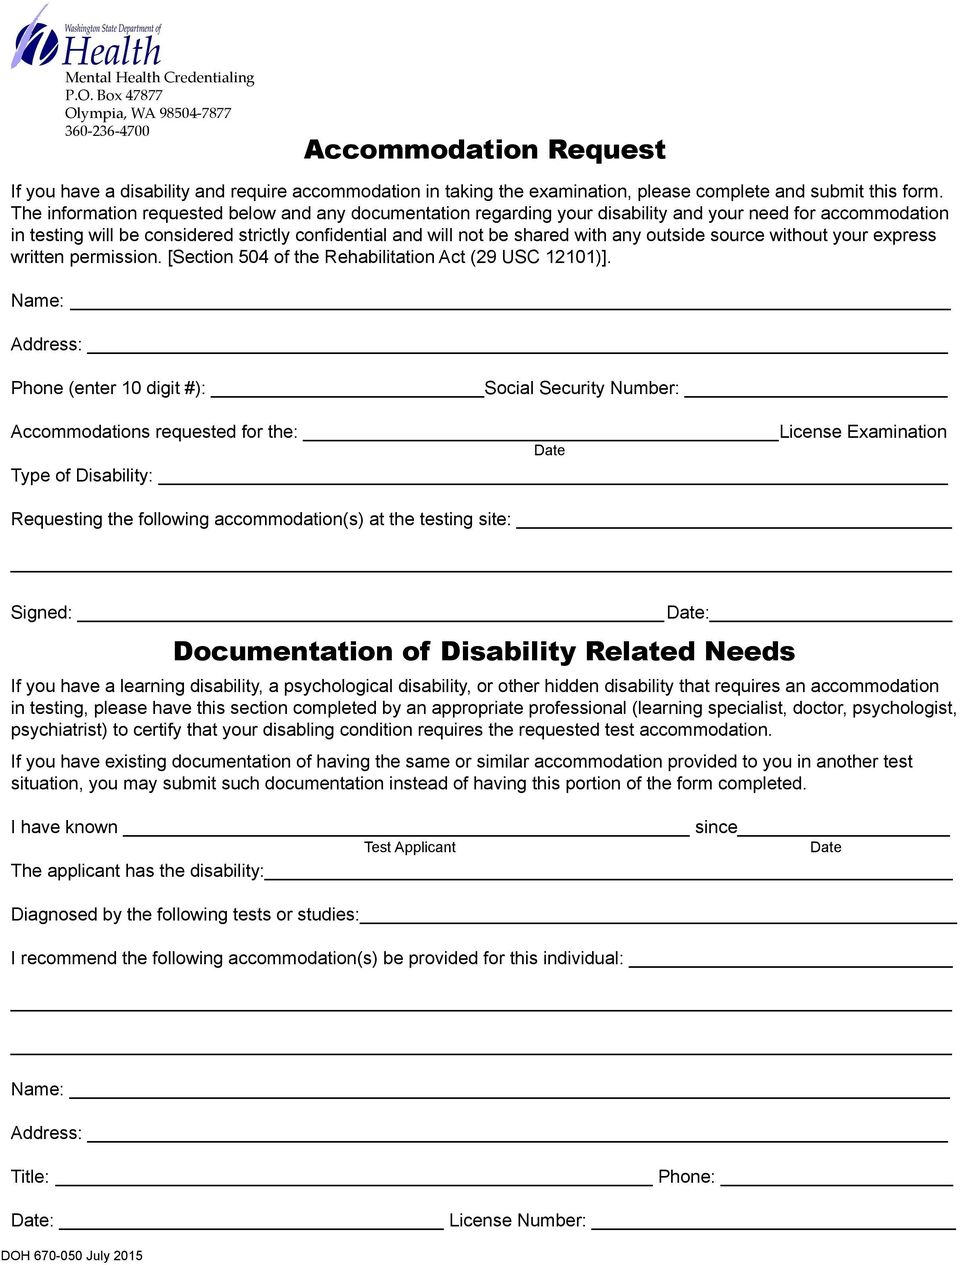 The information requested below and any documentation regarding your disability and your need for accommodation in testing will be considered strictly confidential and will not be shared with any